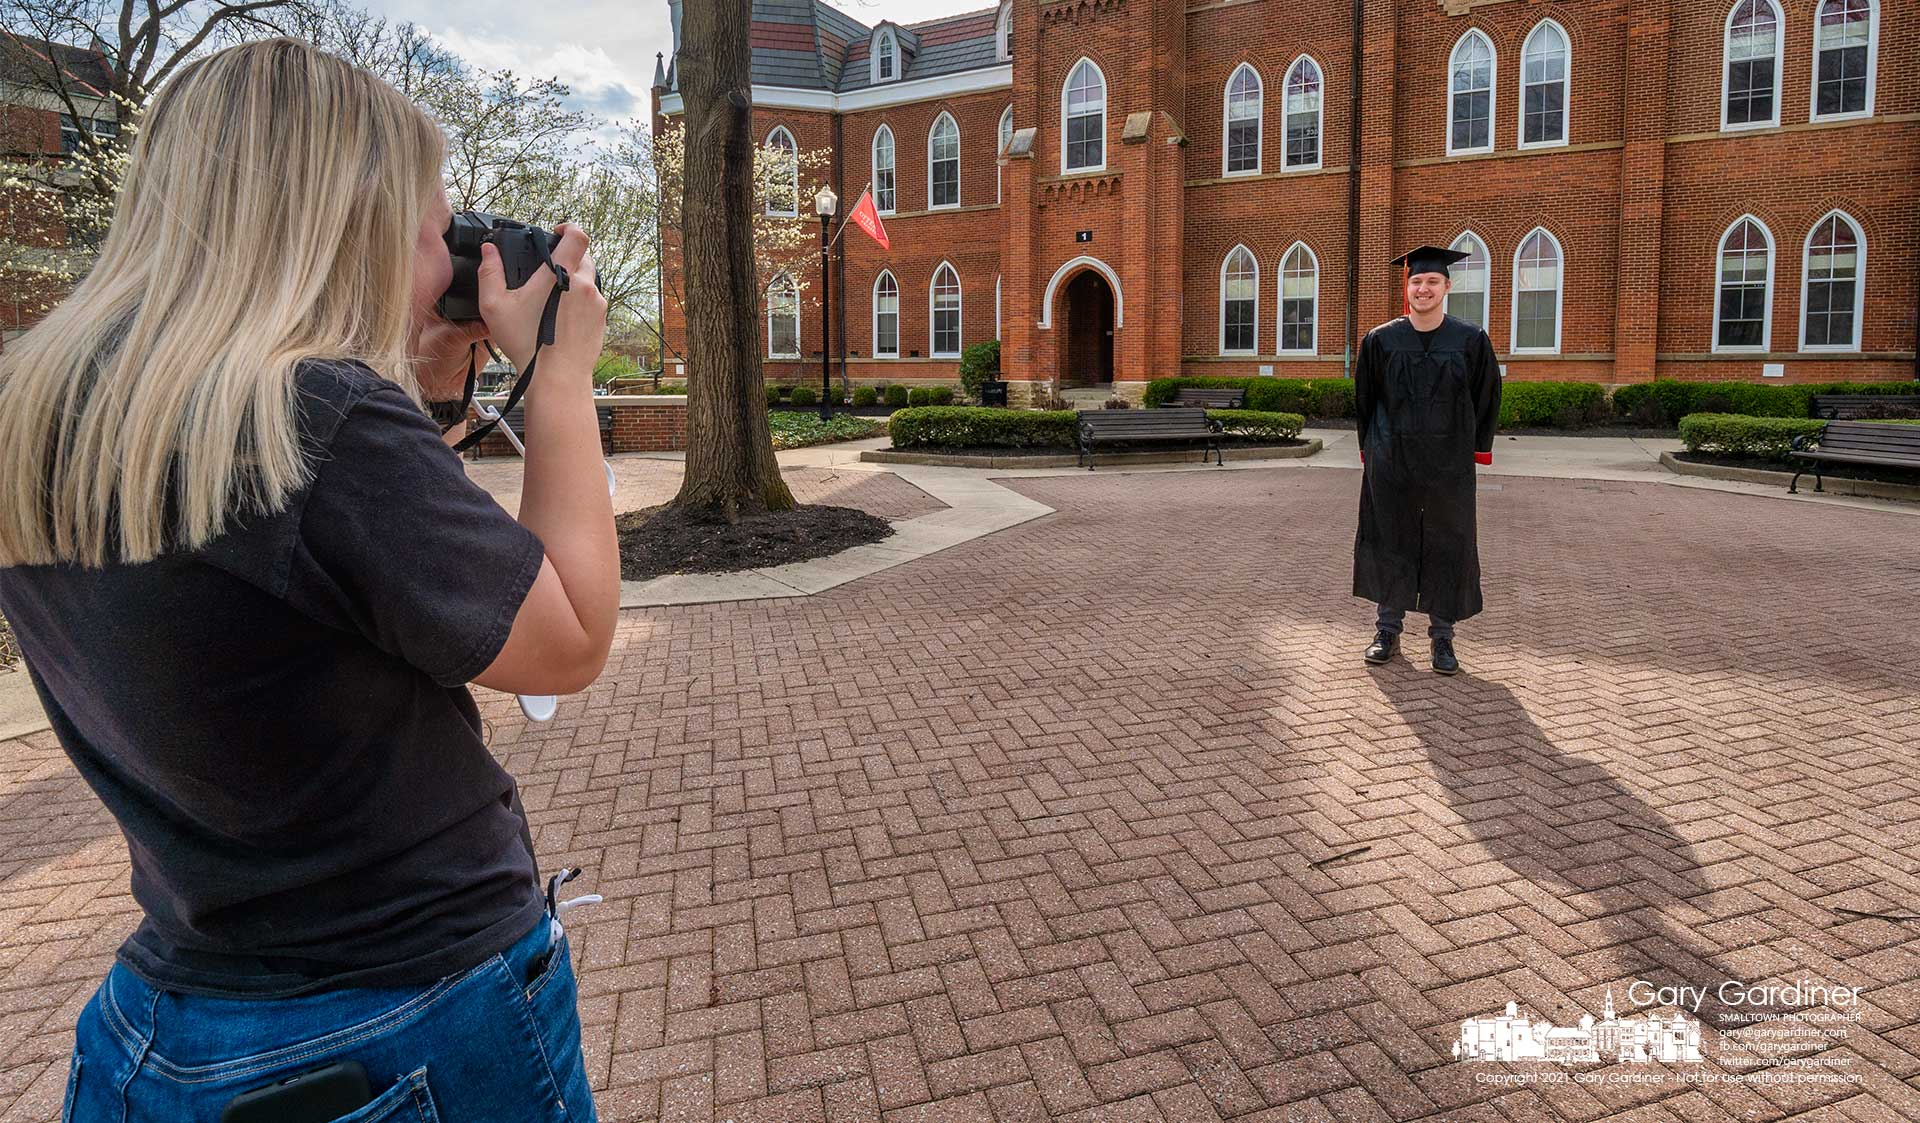 An Otterbein graduating senior poses for his fiance in front of Towers Hall as he prepares for commencement ceremonies in May. My Final Photo for April 7, 2021.